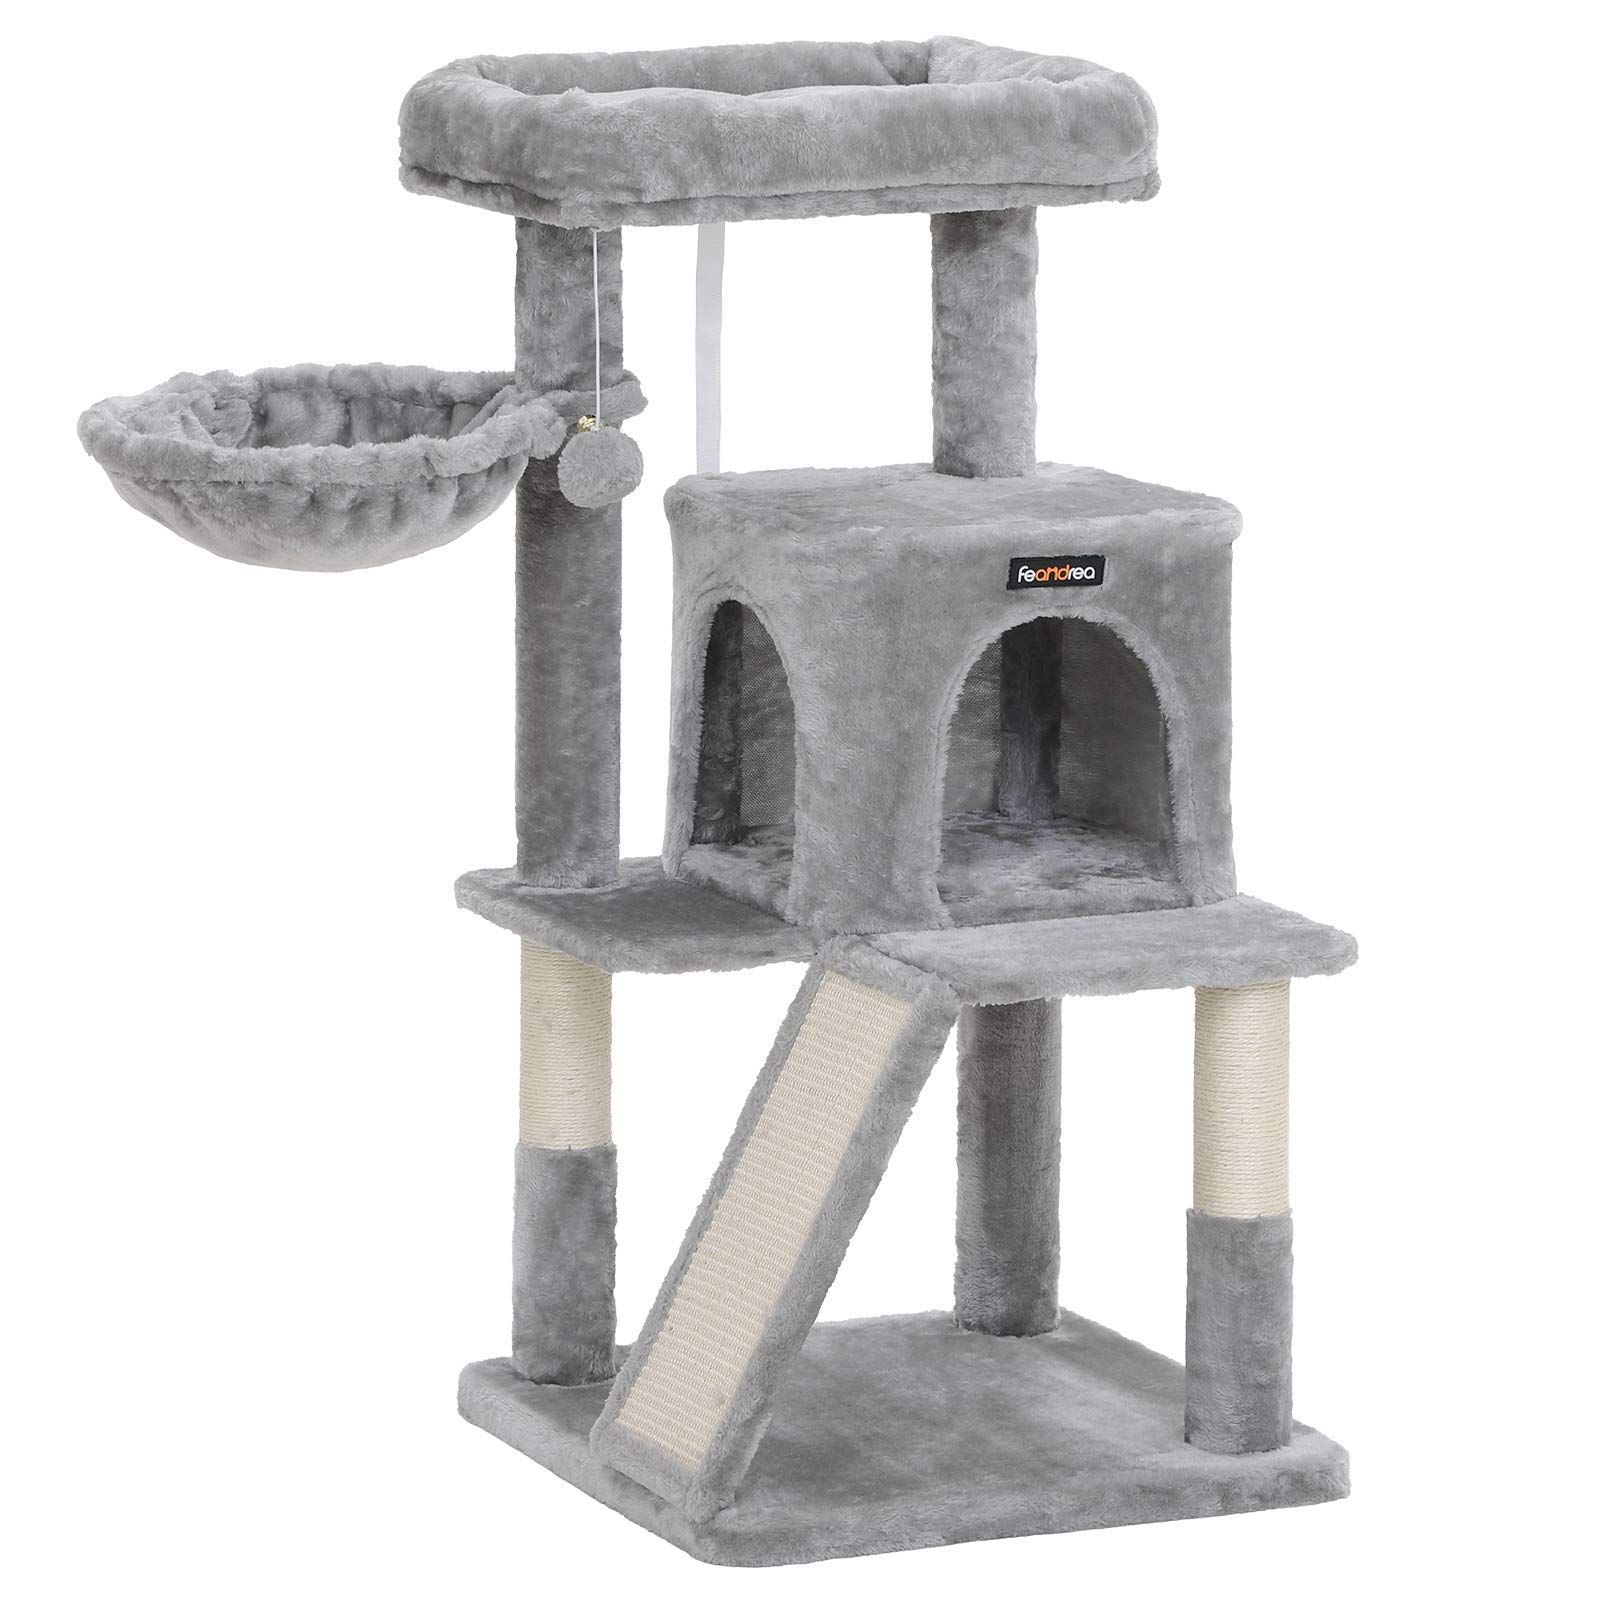 FEANDREA Cat Tree with SisalCovered Scratching Posts * Be